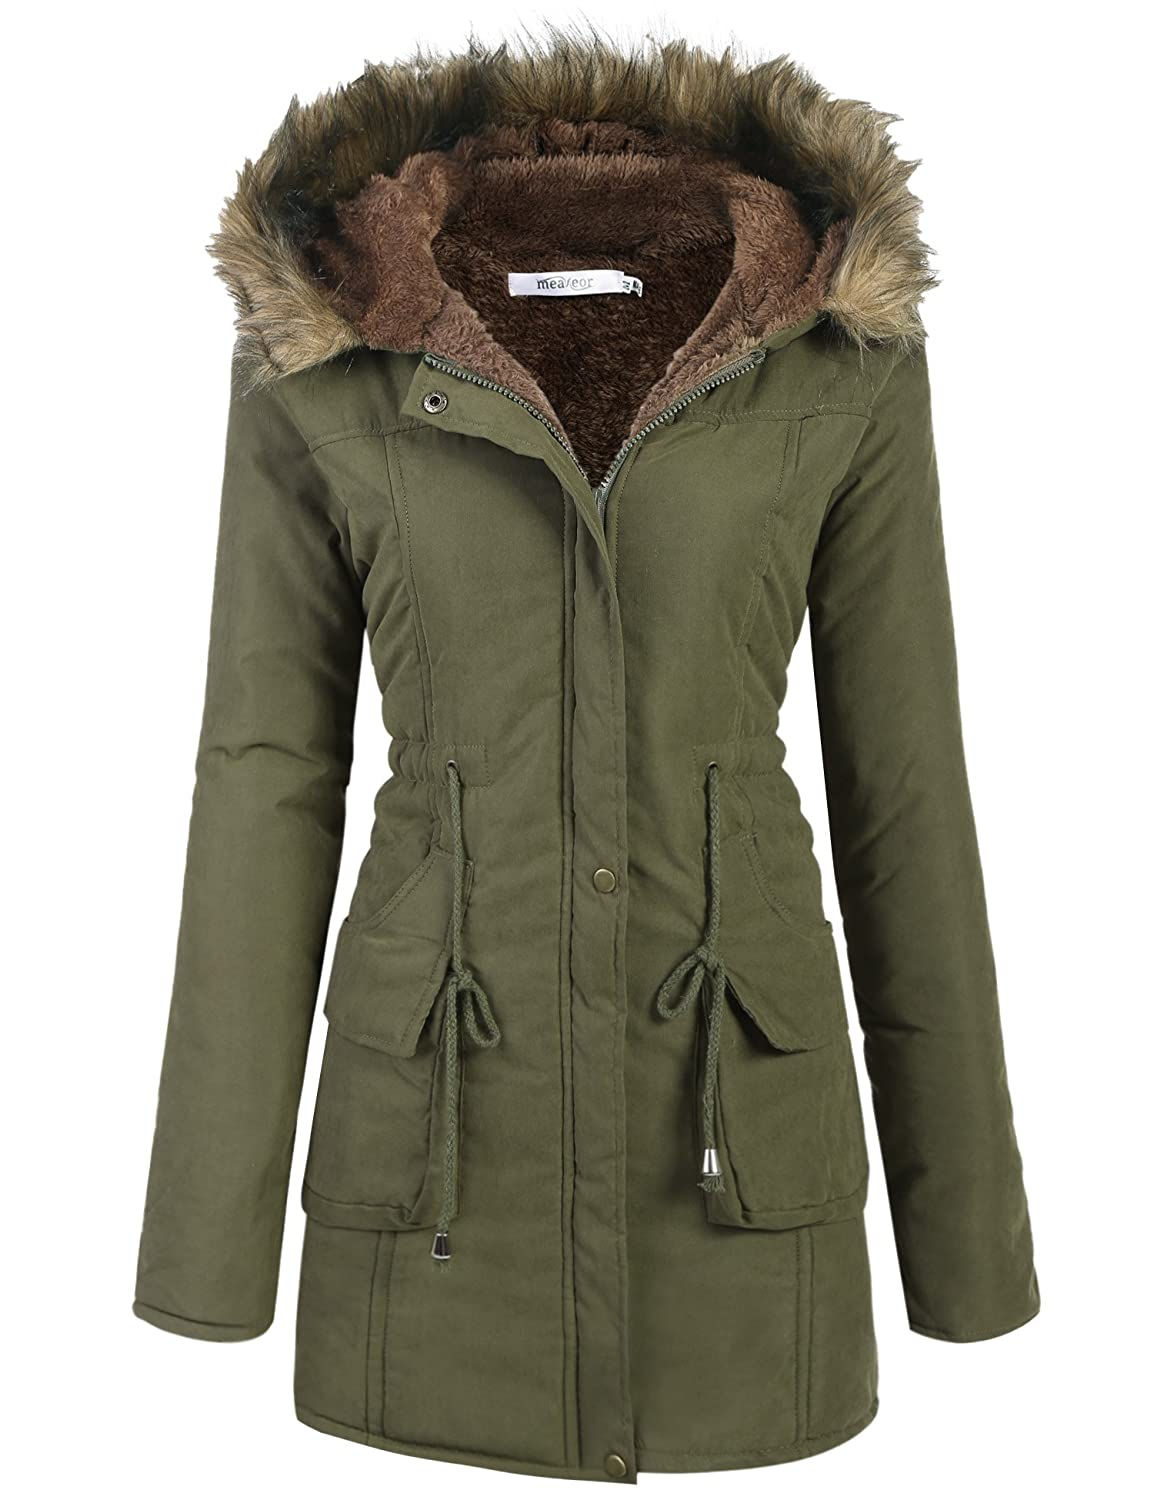 Hooded Parka Jacket Womens Designer Jackets